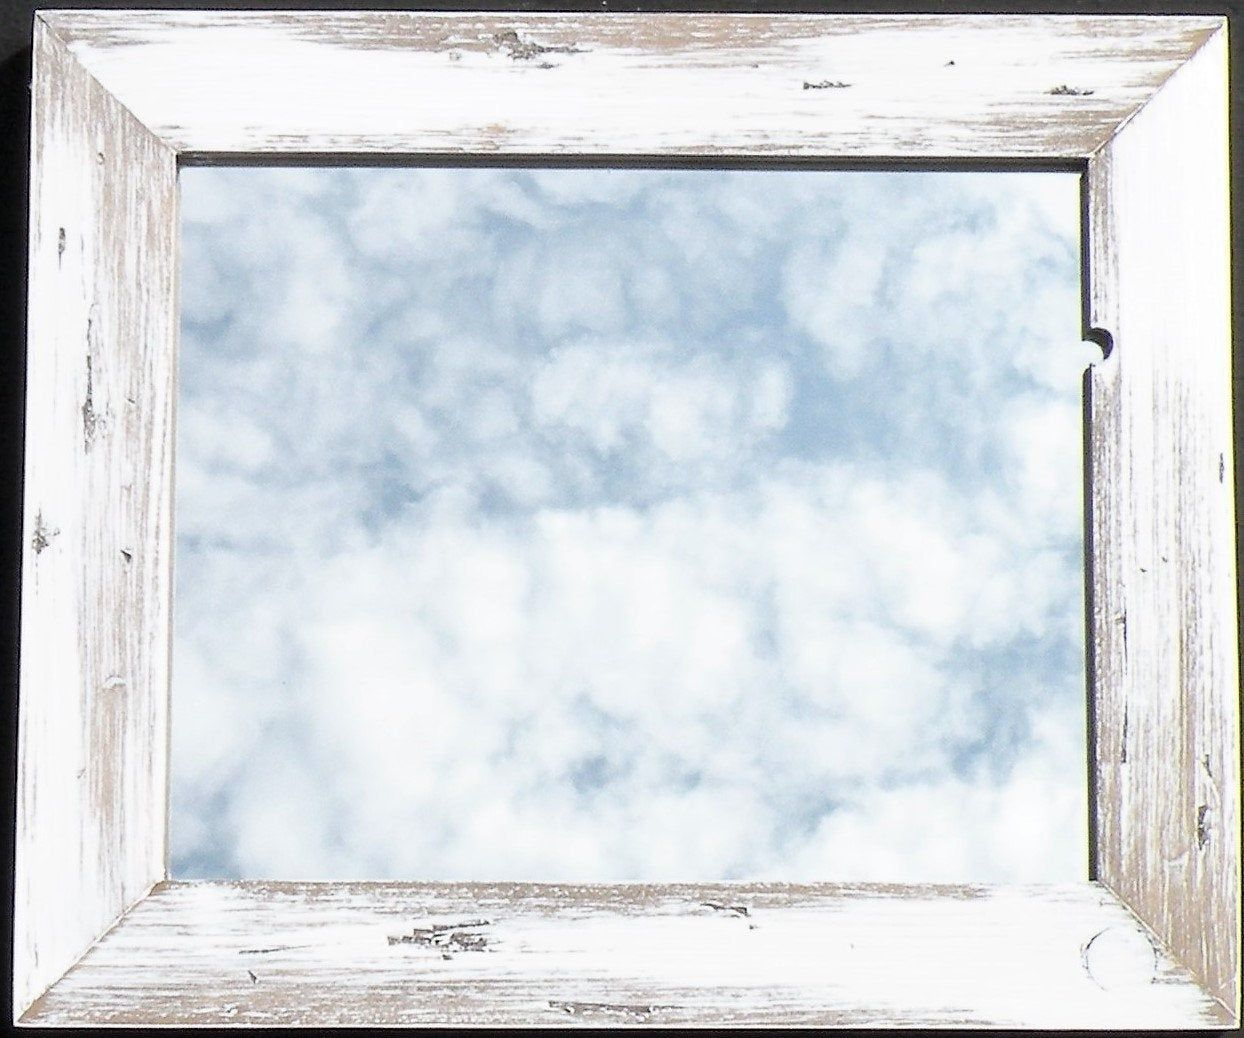 White Washed Gray Mirror White Washed Farmhouse Rustic Pine Wood Mirror White Painted Distressed Mir Rustic Mirror Frame Wood Framed Mirror Rustic Wood Frame